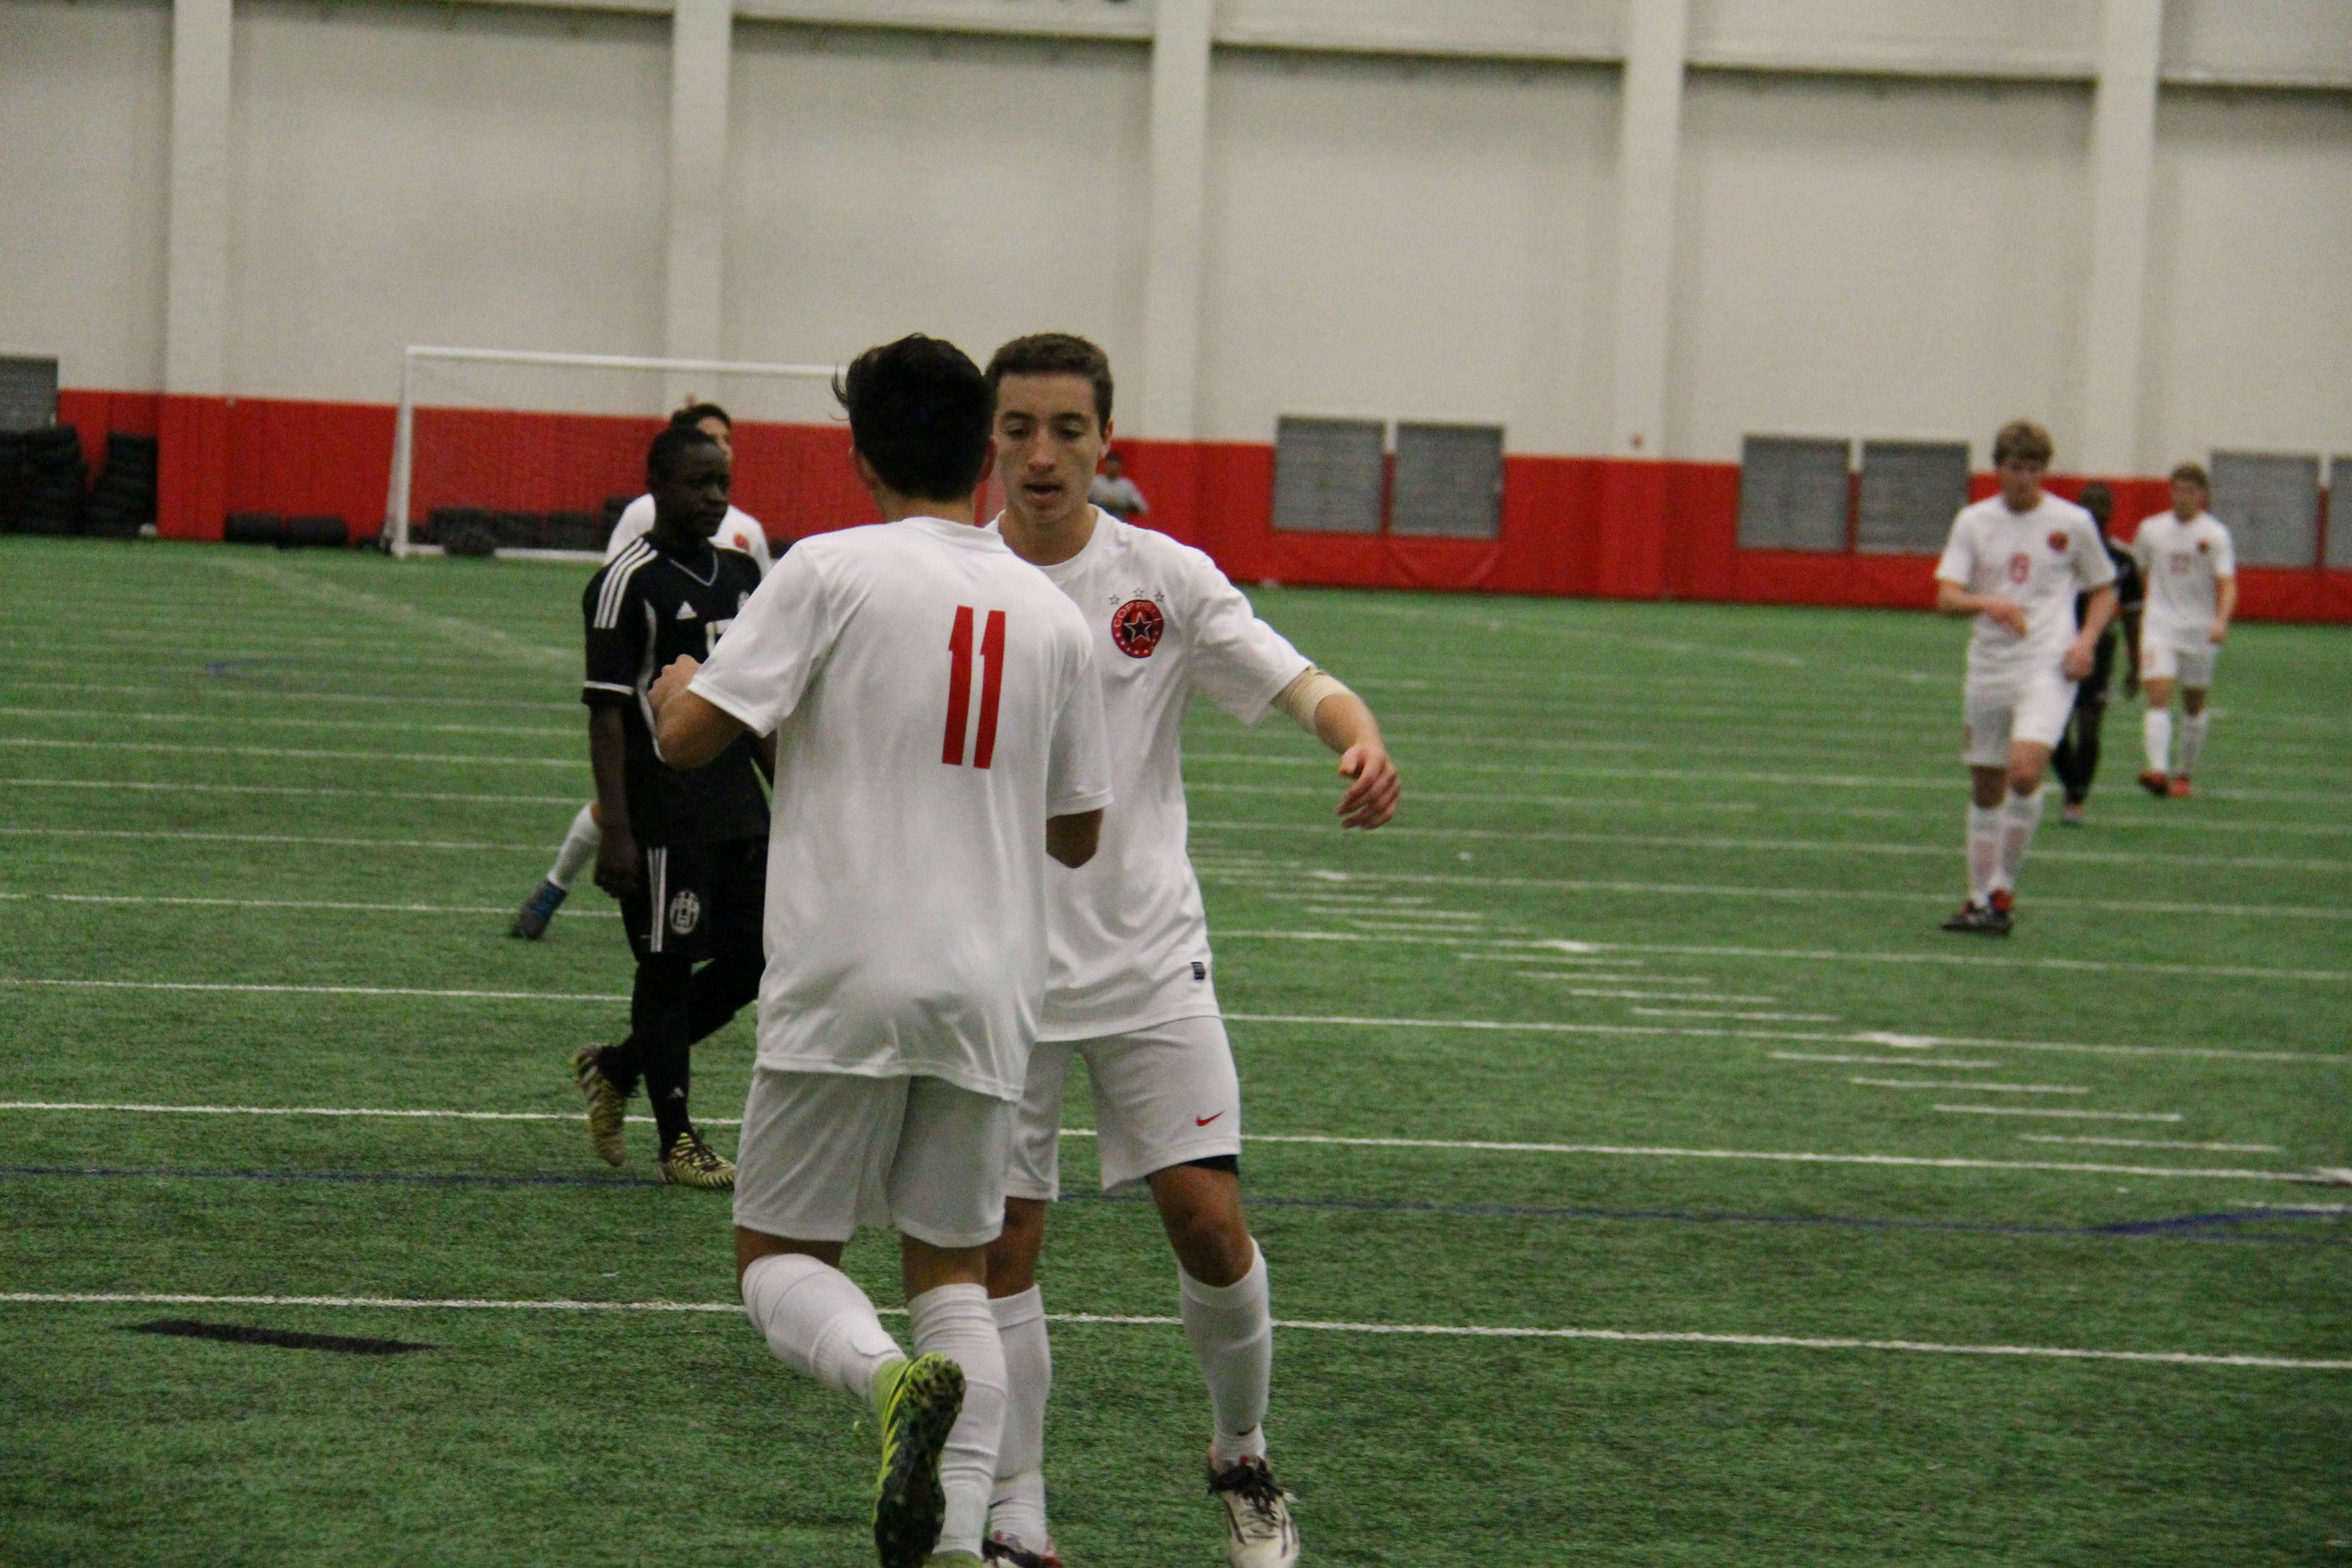 Senior forward Nick Taylor (11) and senior defender Jacob McEwen embrace after Taylor's goal in the second half of Coppell's 5-0 win over Sam Houston. Taylor recorded a goal and three assists in the Cowboys' two victories.